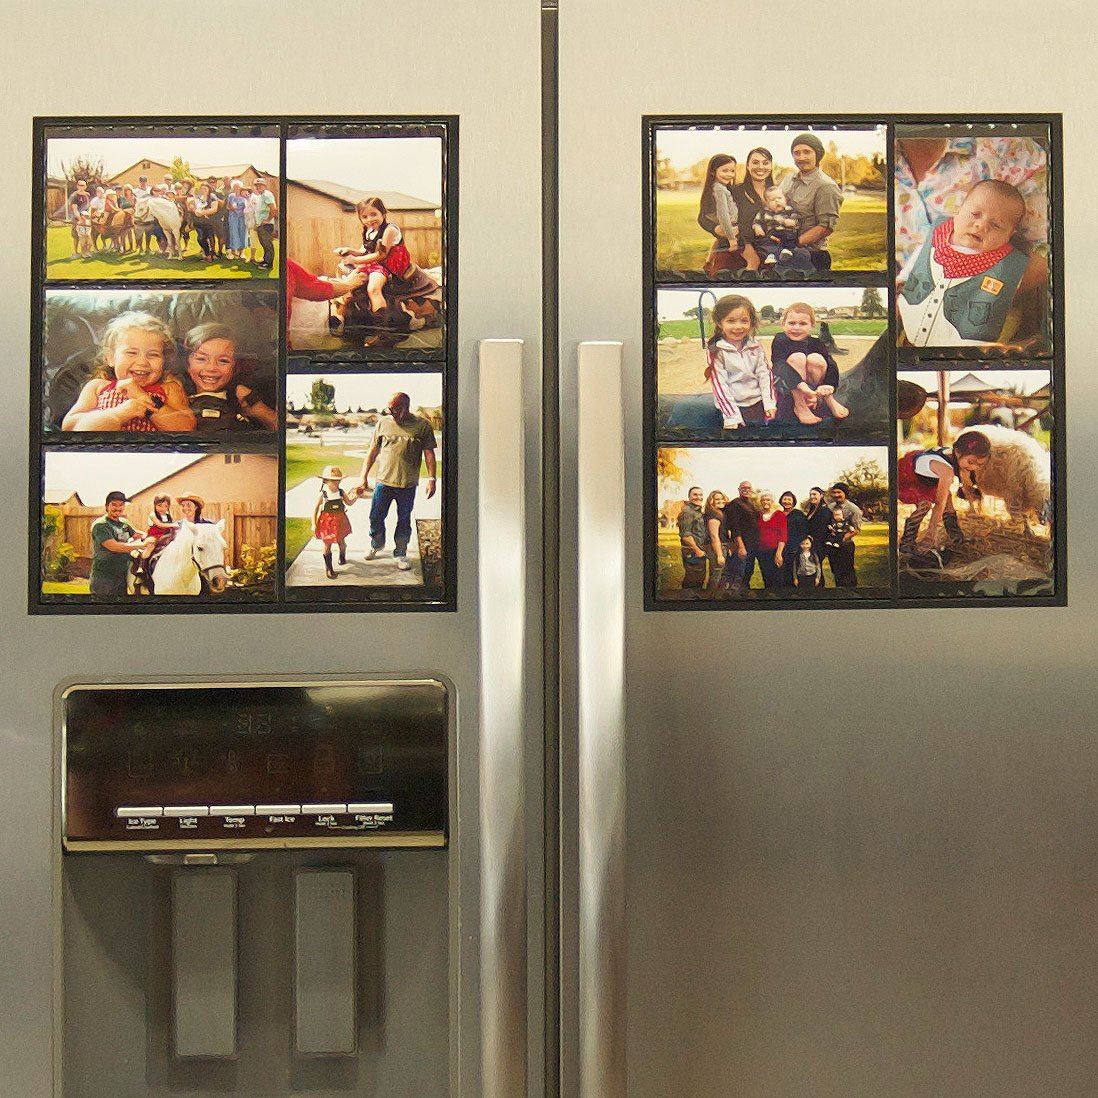 "#1 Magnetic Picture Frame Collage For Refrigerator – Holds 10 – 4×6 Photos – Organizes Your Fridge For That Model Home Look – ""Slam-Proof"" Flexible Magnet Photo Frame – Makes For a Great Gift – Affordable Way To Protect & Display Your Family Memories! –"